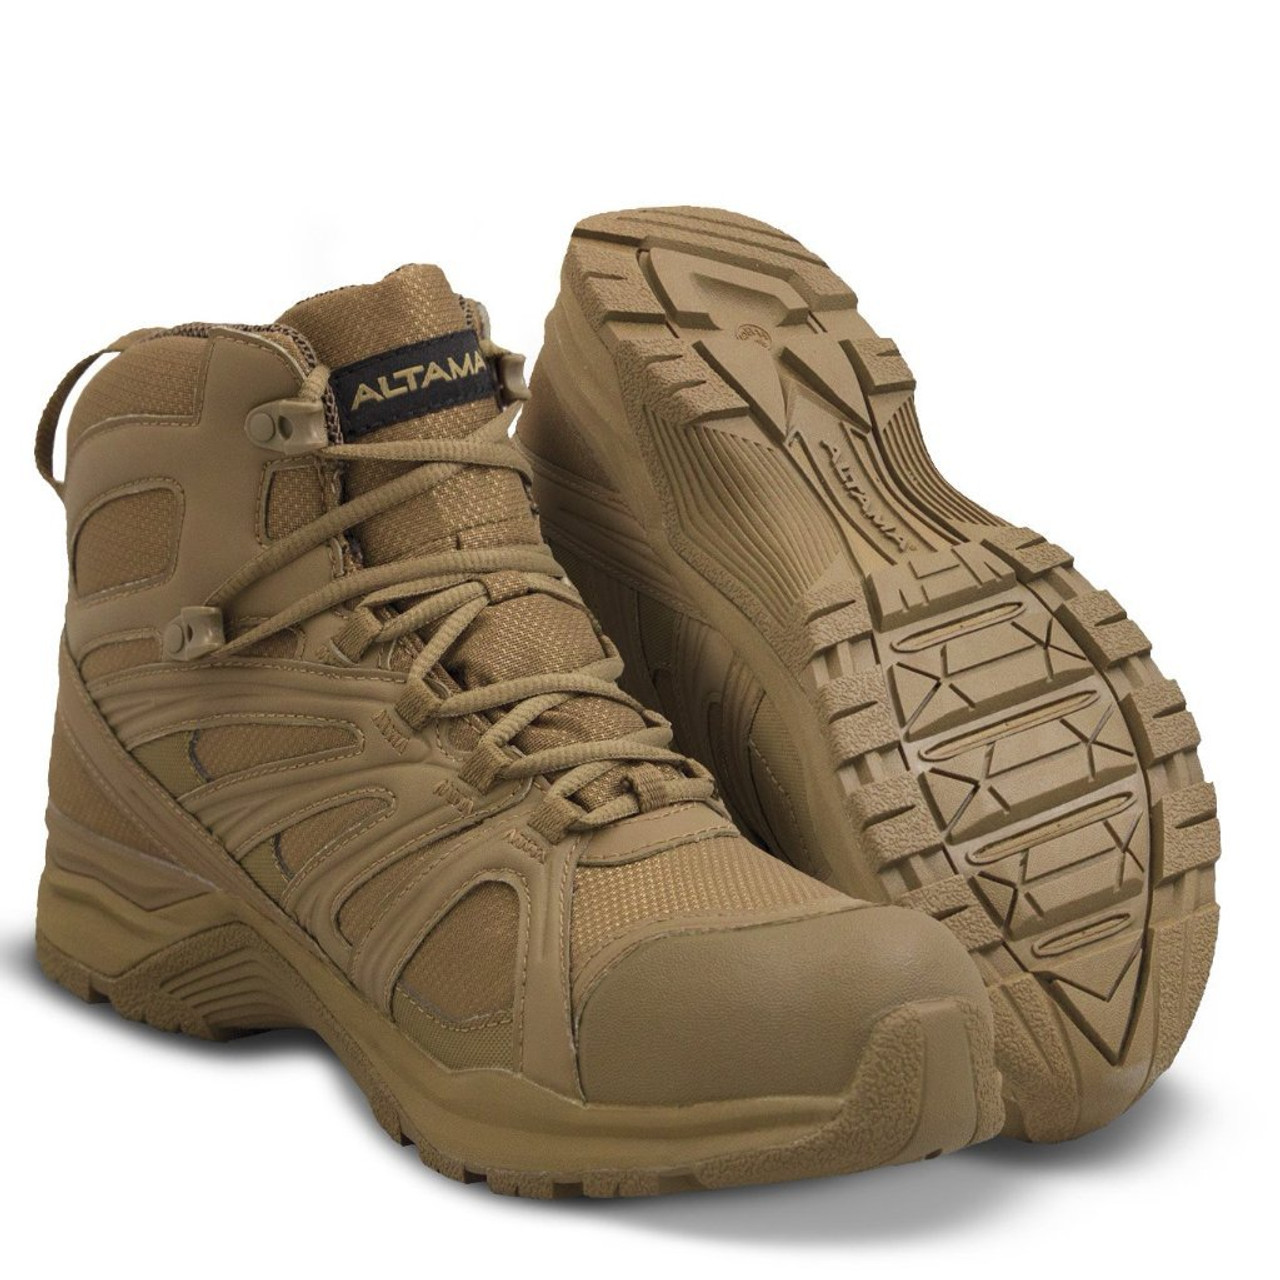 "ALTAMA ABOOTTABAD TRAIL MID WATERPROOF 6"" TACTICAL BOOTS 353203 / COYOTE"